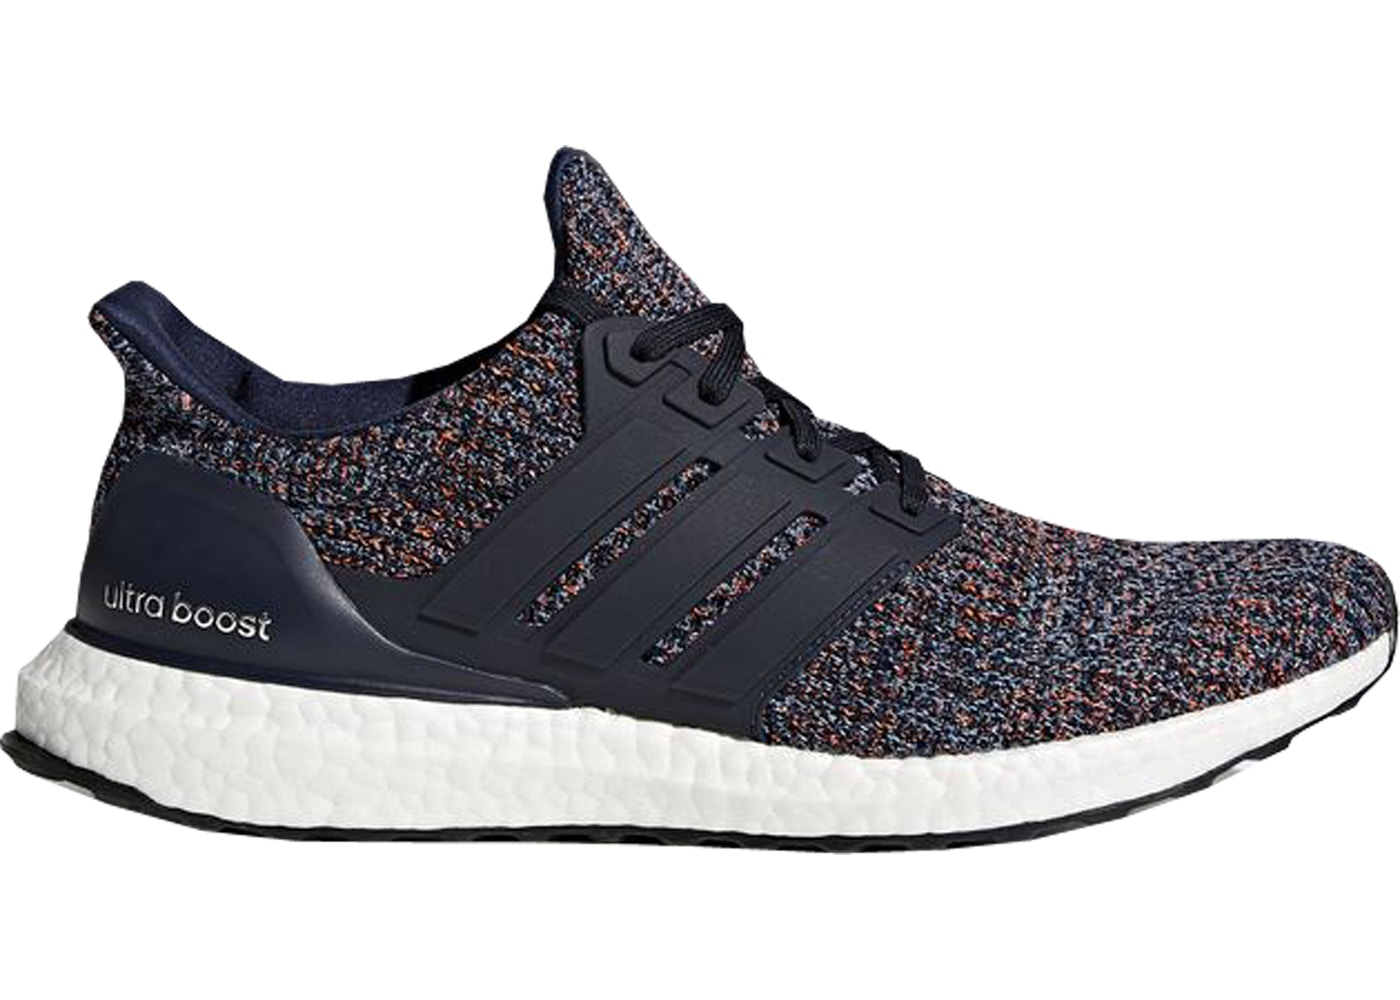 Adidas ultra boost 4.0 cookies and cream 2.0